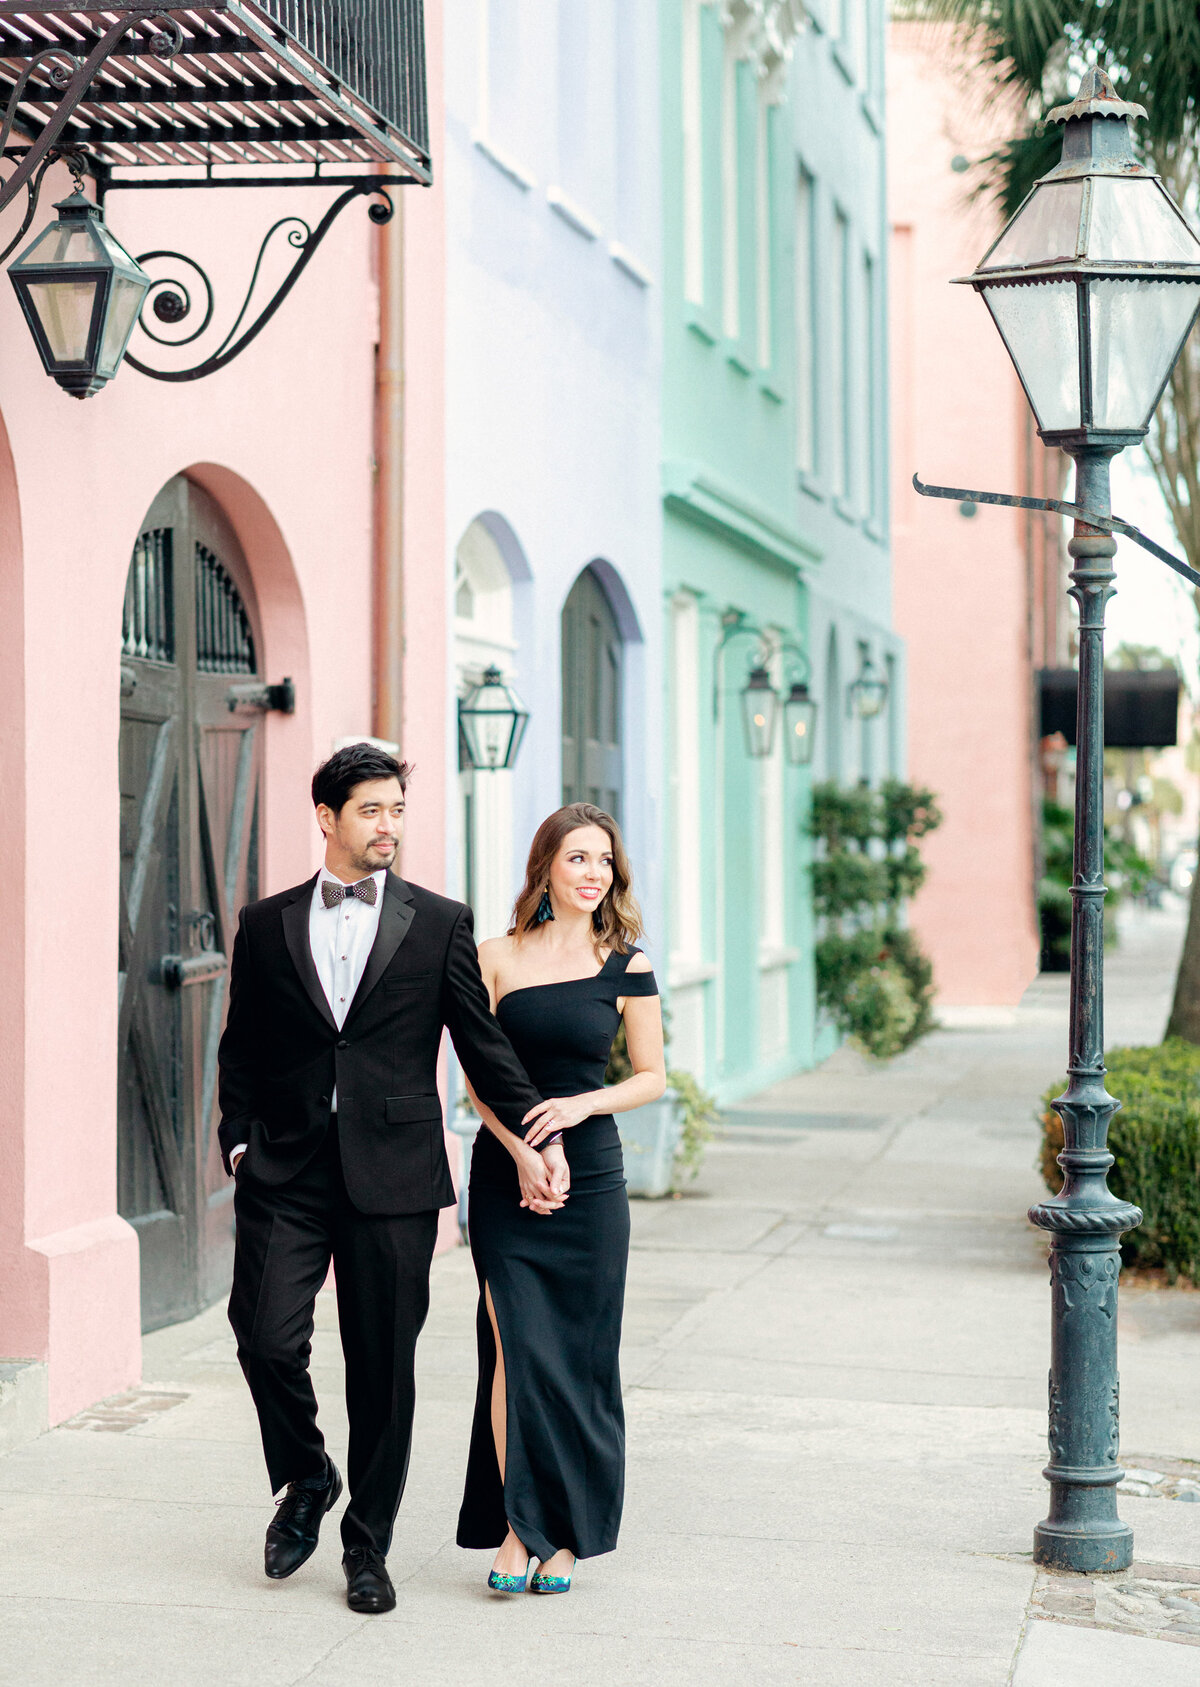 Man in tuxedo and girl in black dress walking by rainbow row homes